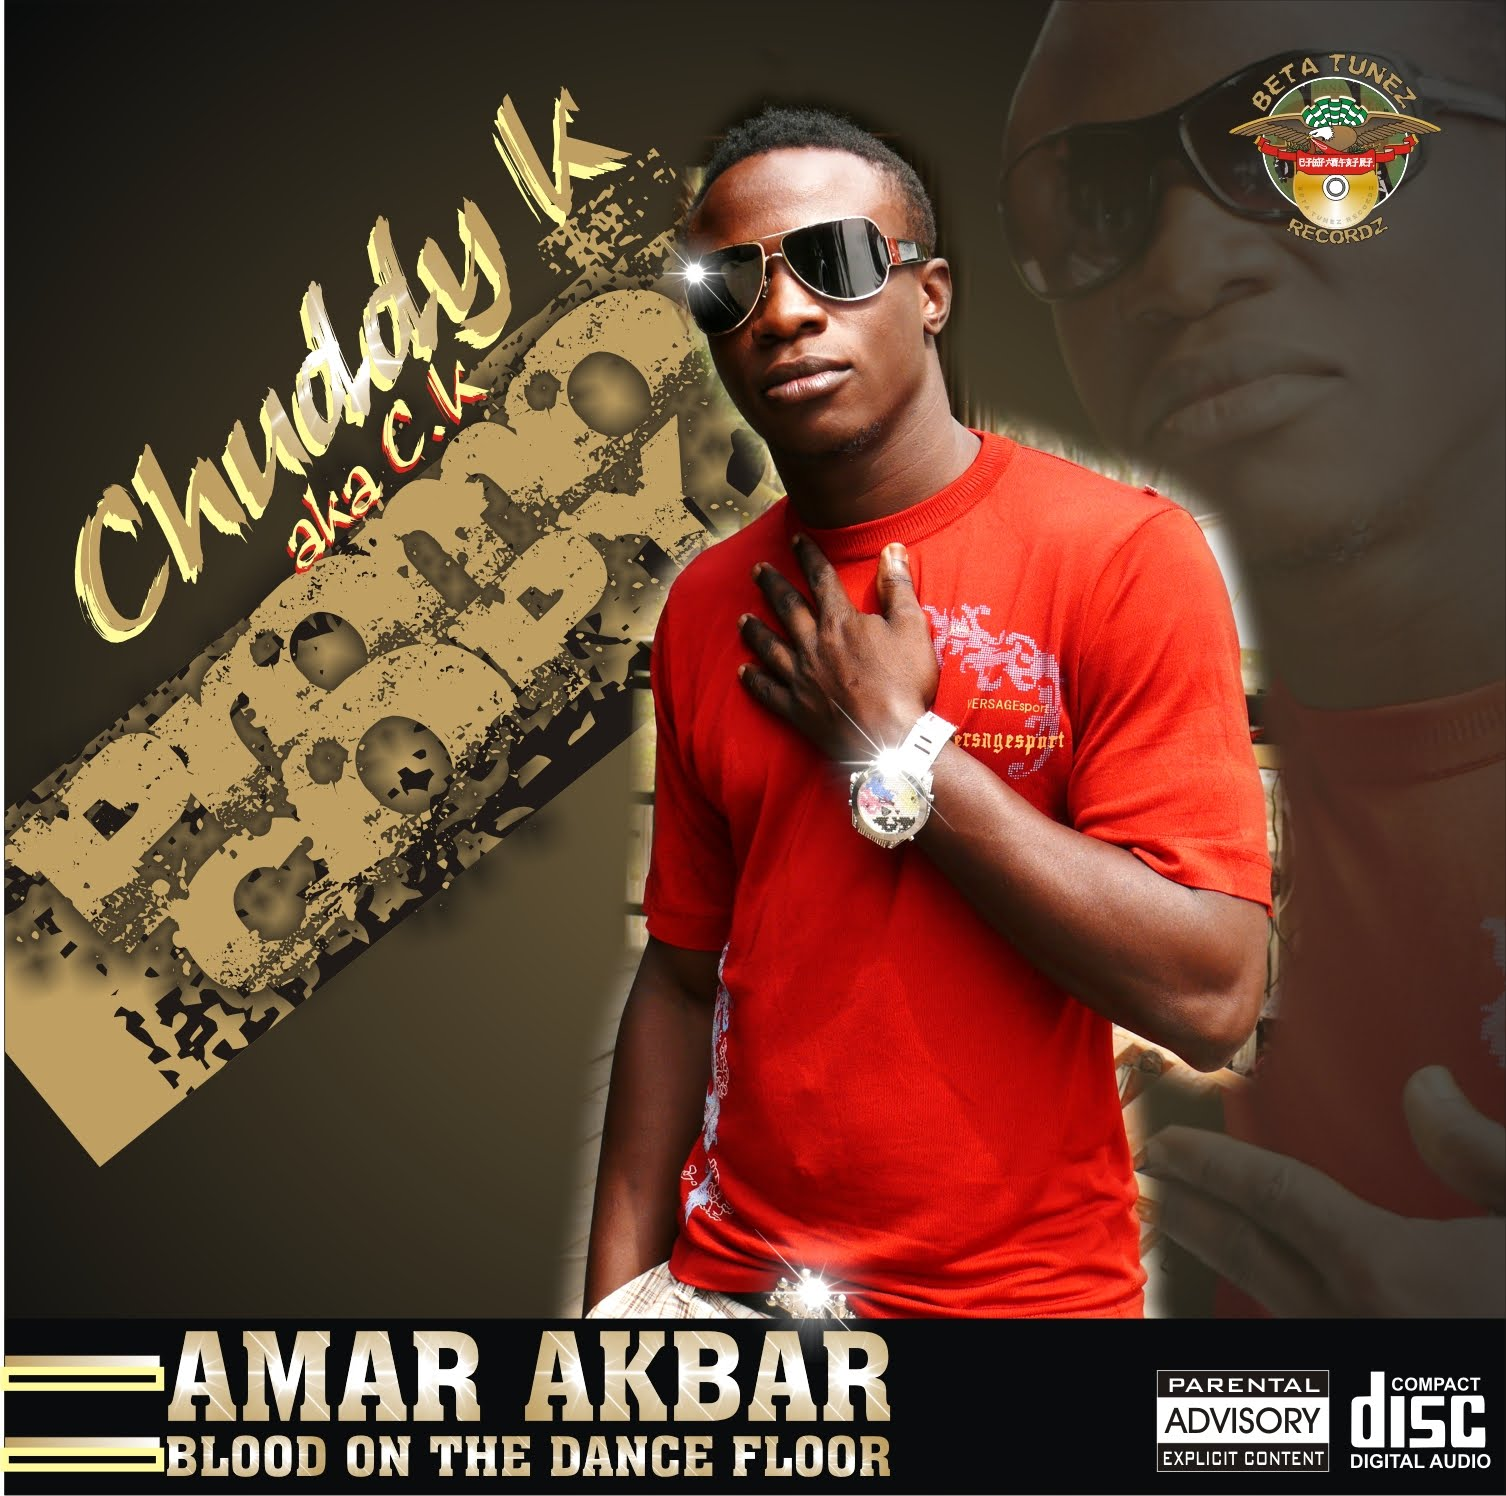 I promo chuddy k is back with 39 39 amar akbar 39 39 blood on for 1 2 34 get on the dance floor